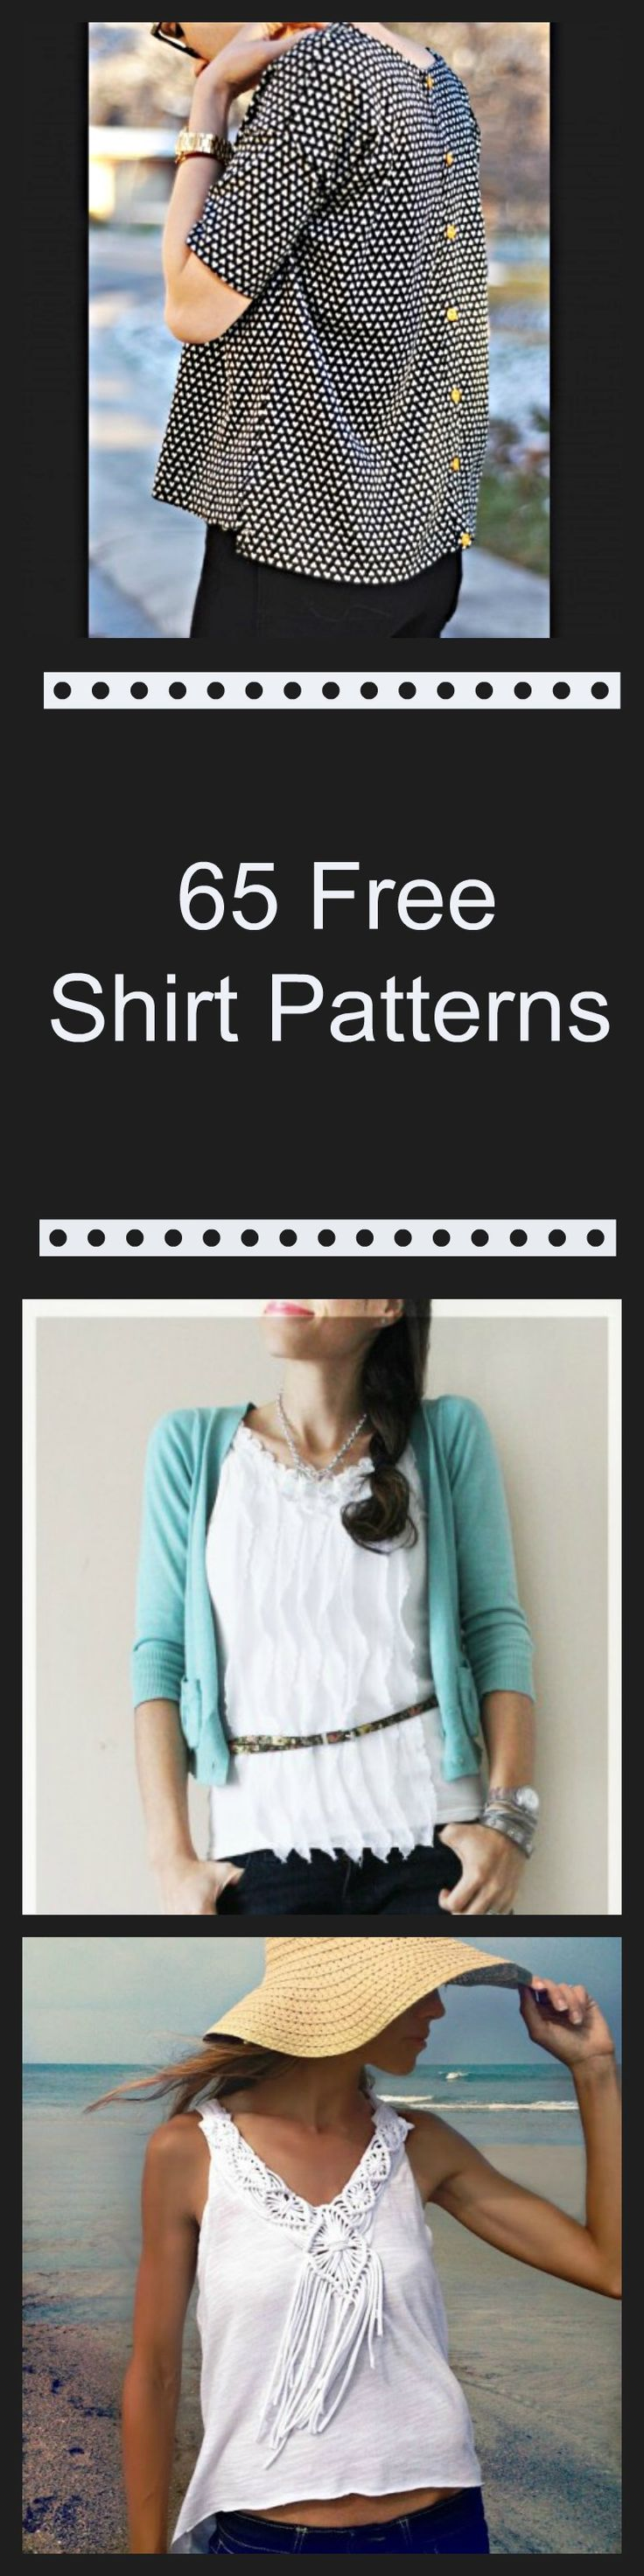 65 Free Shirt Patterns